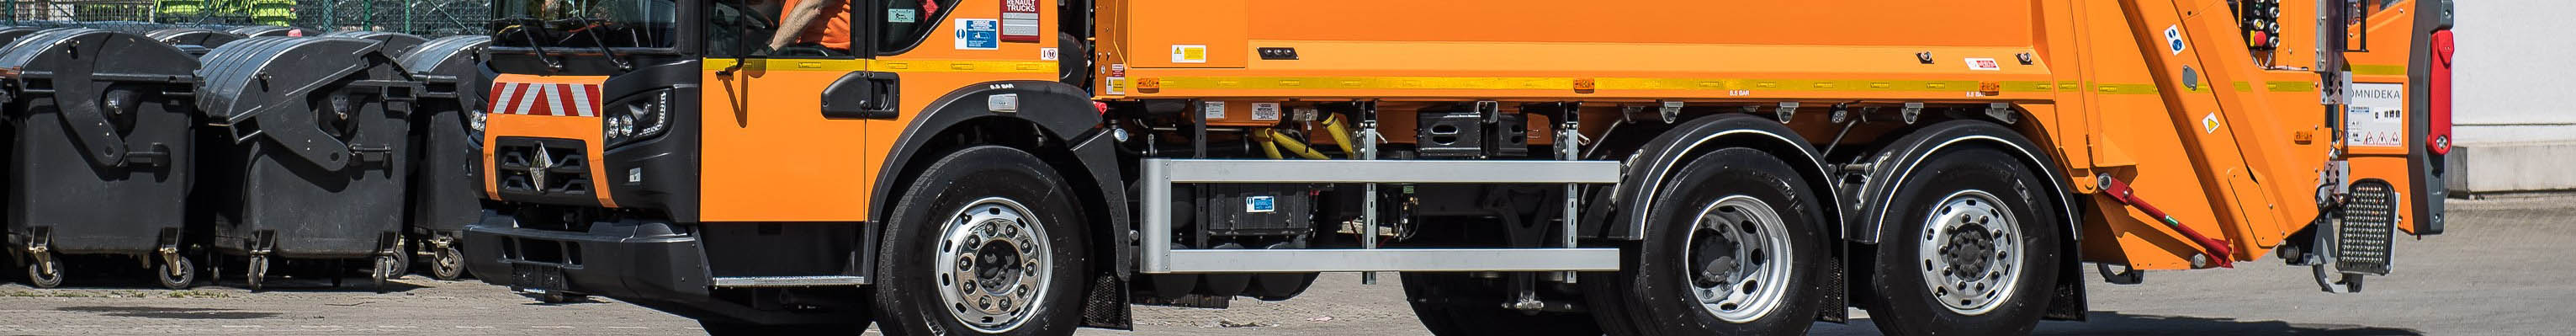 Steering and suspension systems for trucks